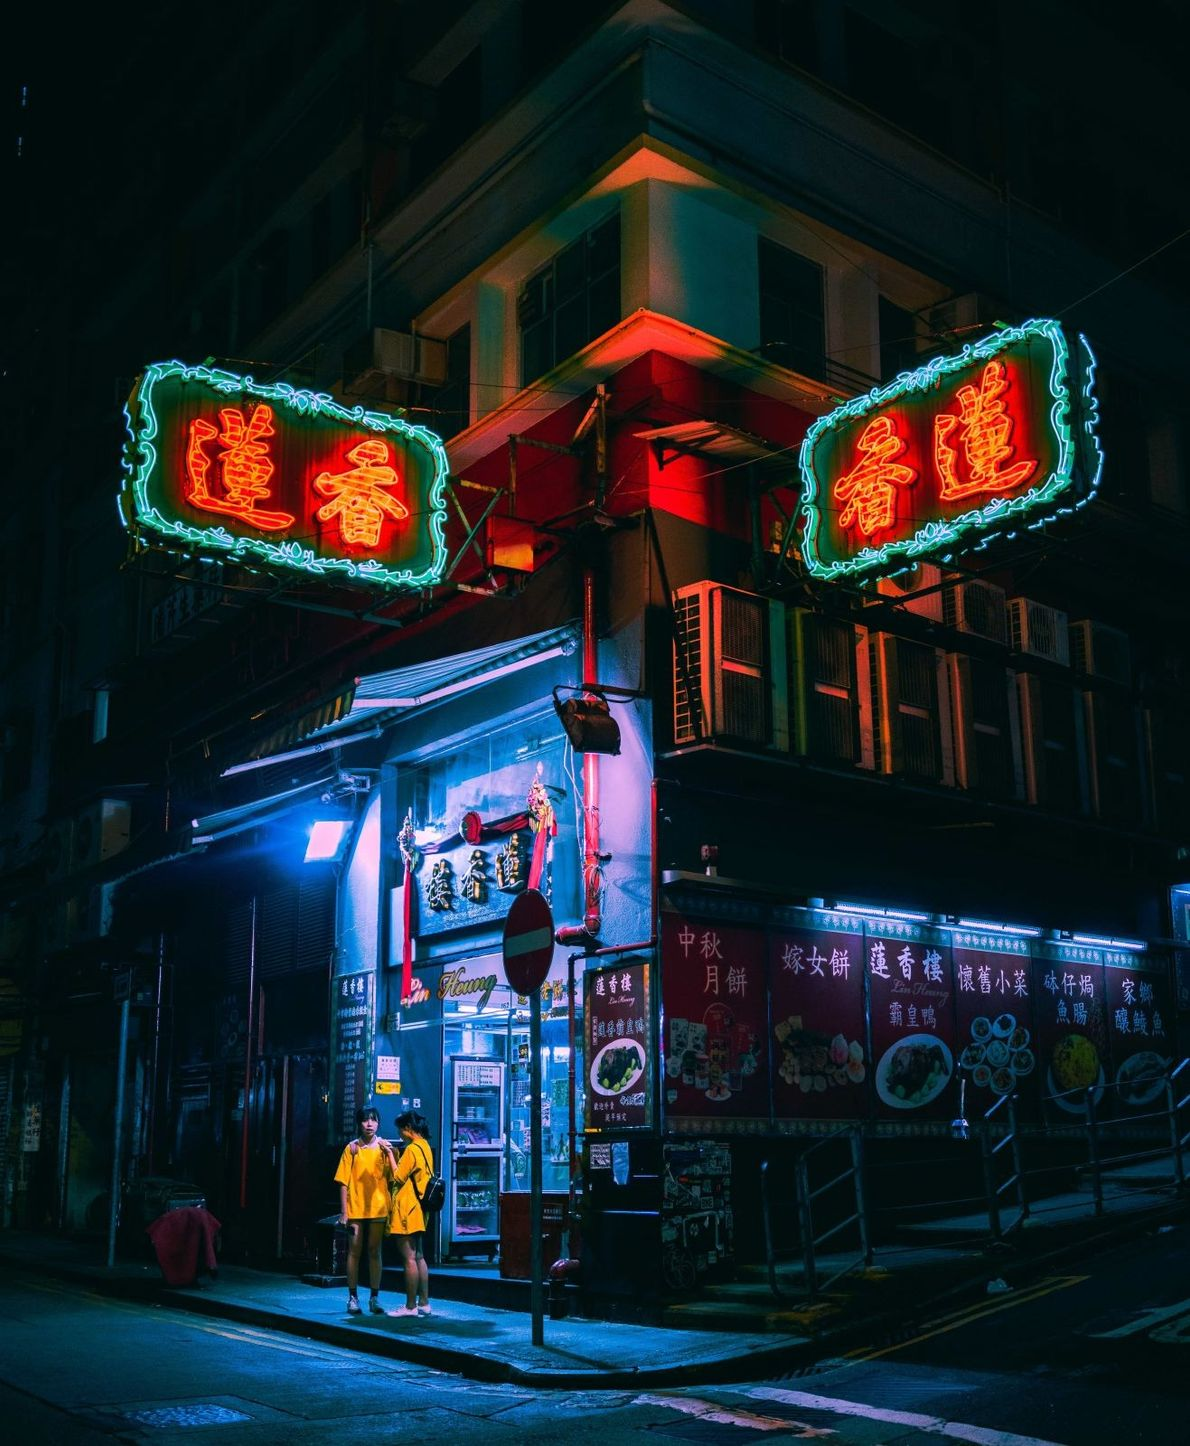 Picture of neon signs in Hong Kong